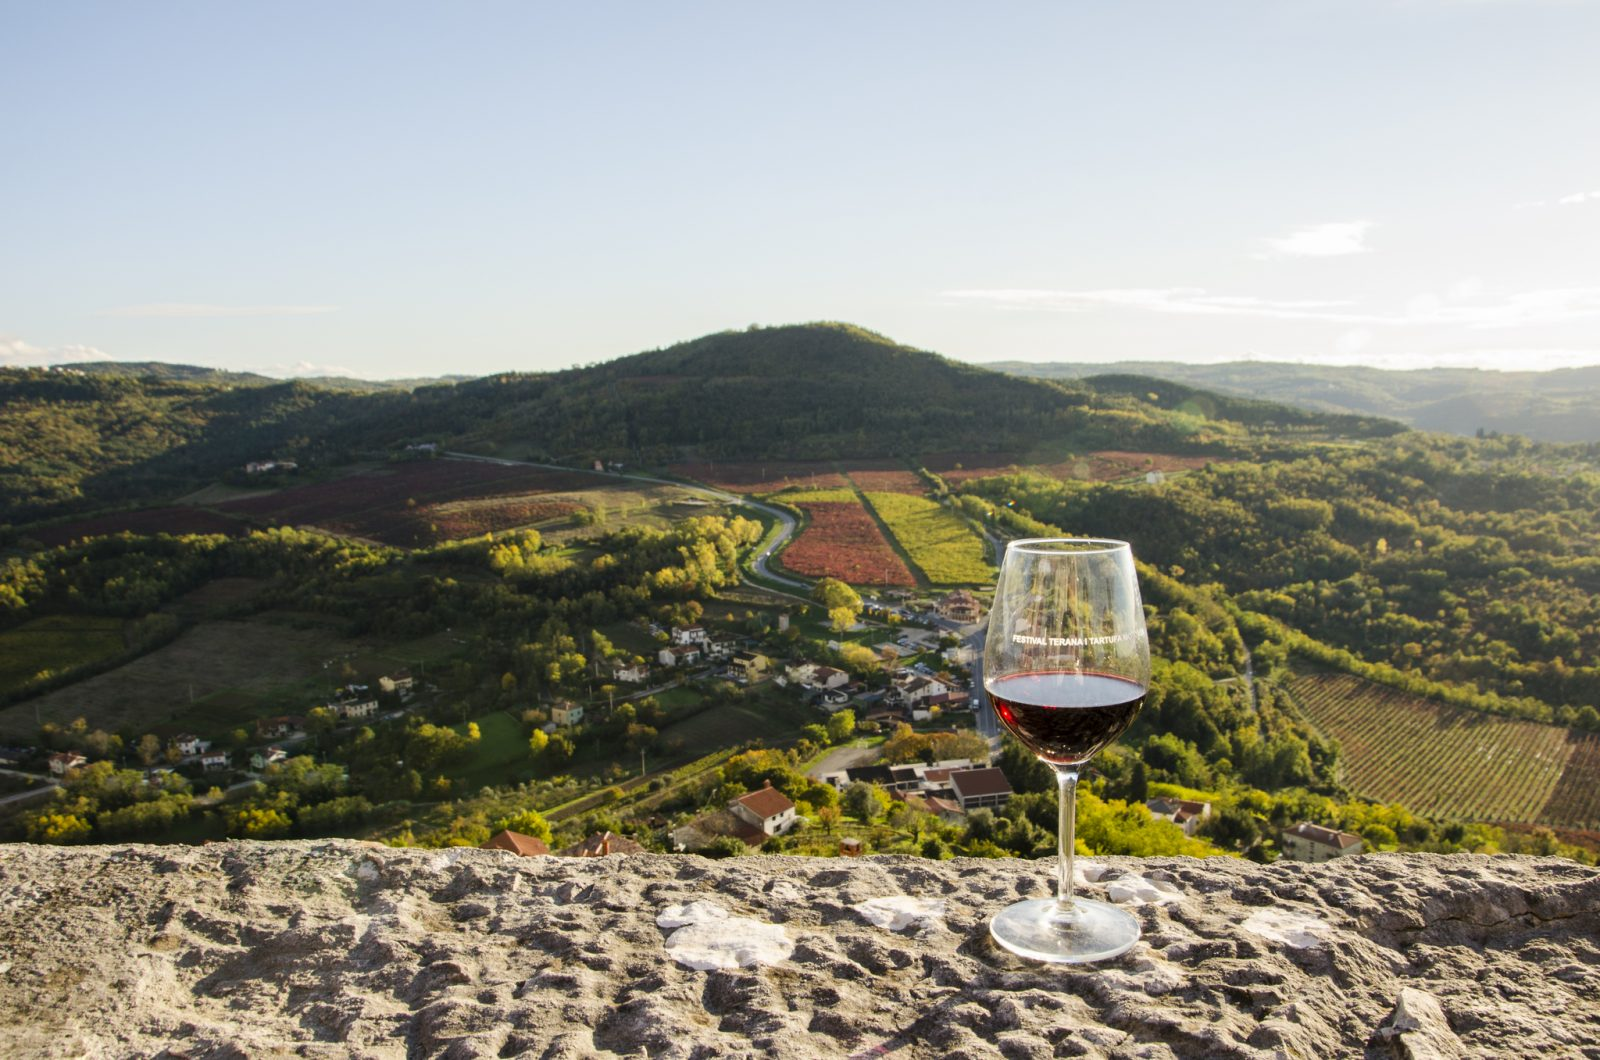 THE FESTIVAL OF TERAN WINE AND TRUFFLES IN MOTOVUN